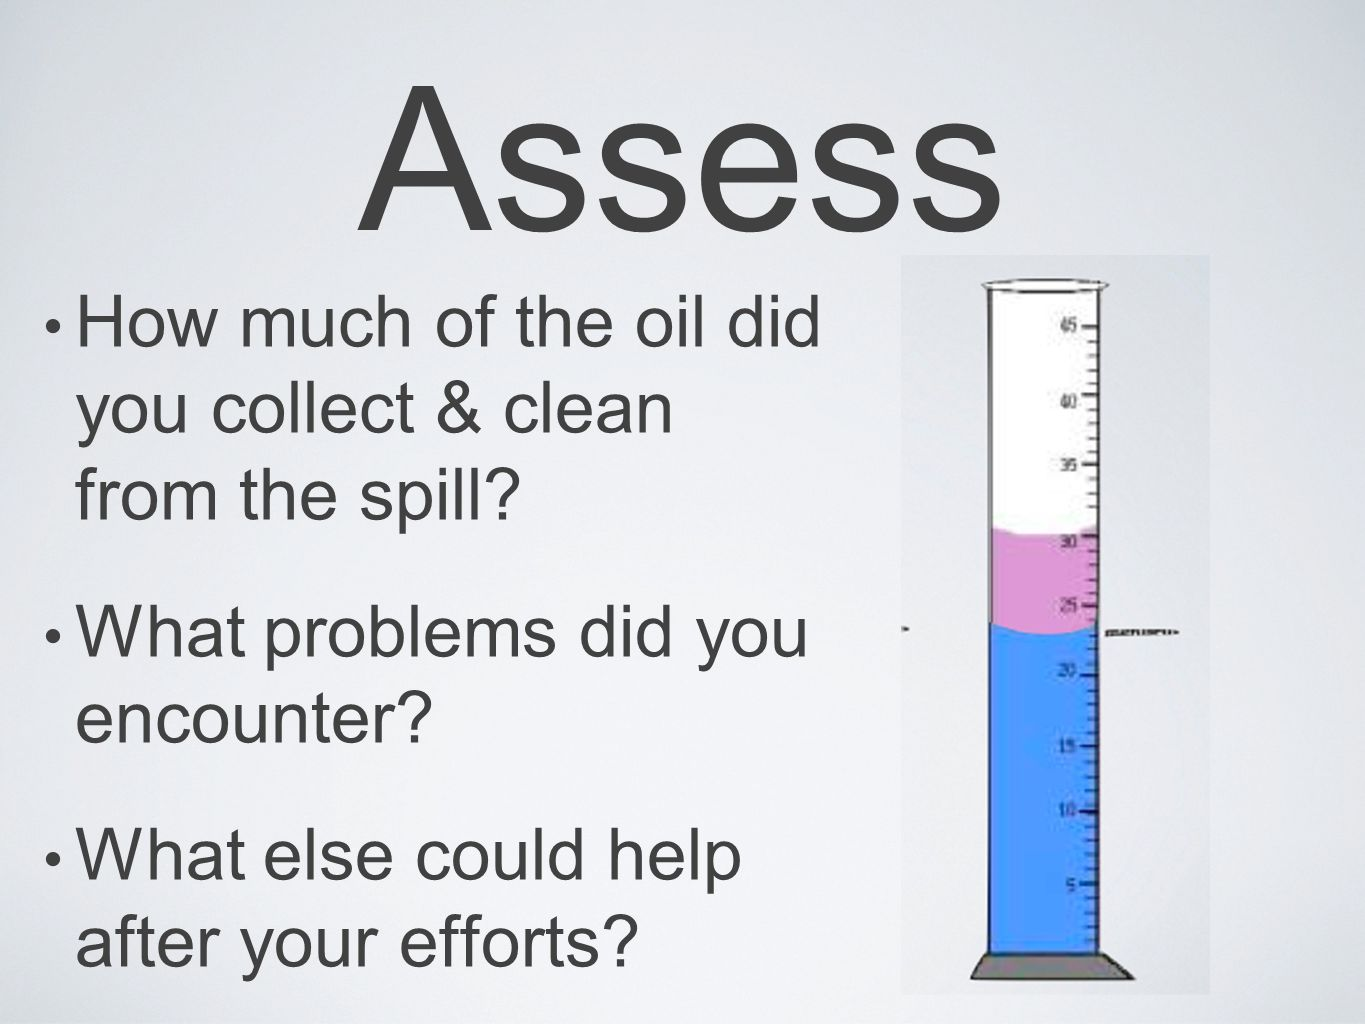 Assess How much of the oil did you collect & clean from the spill.